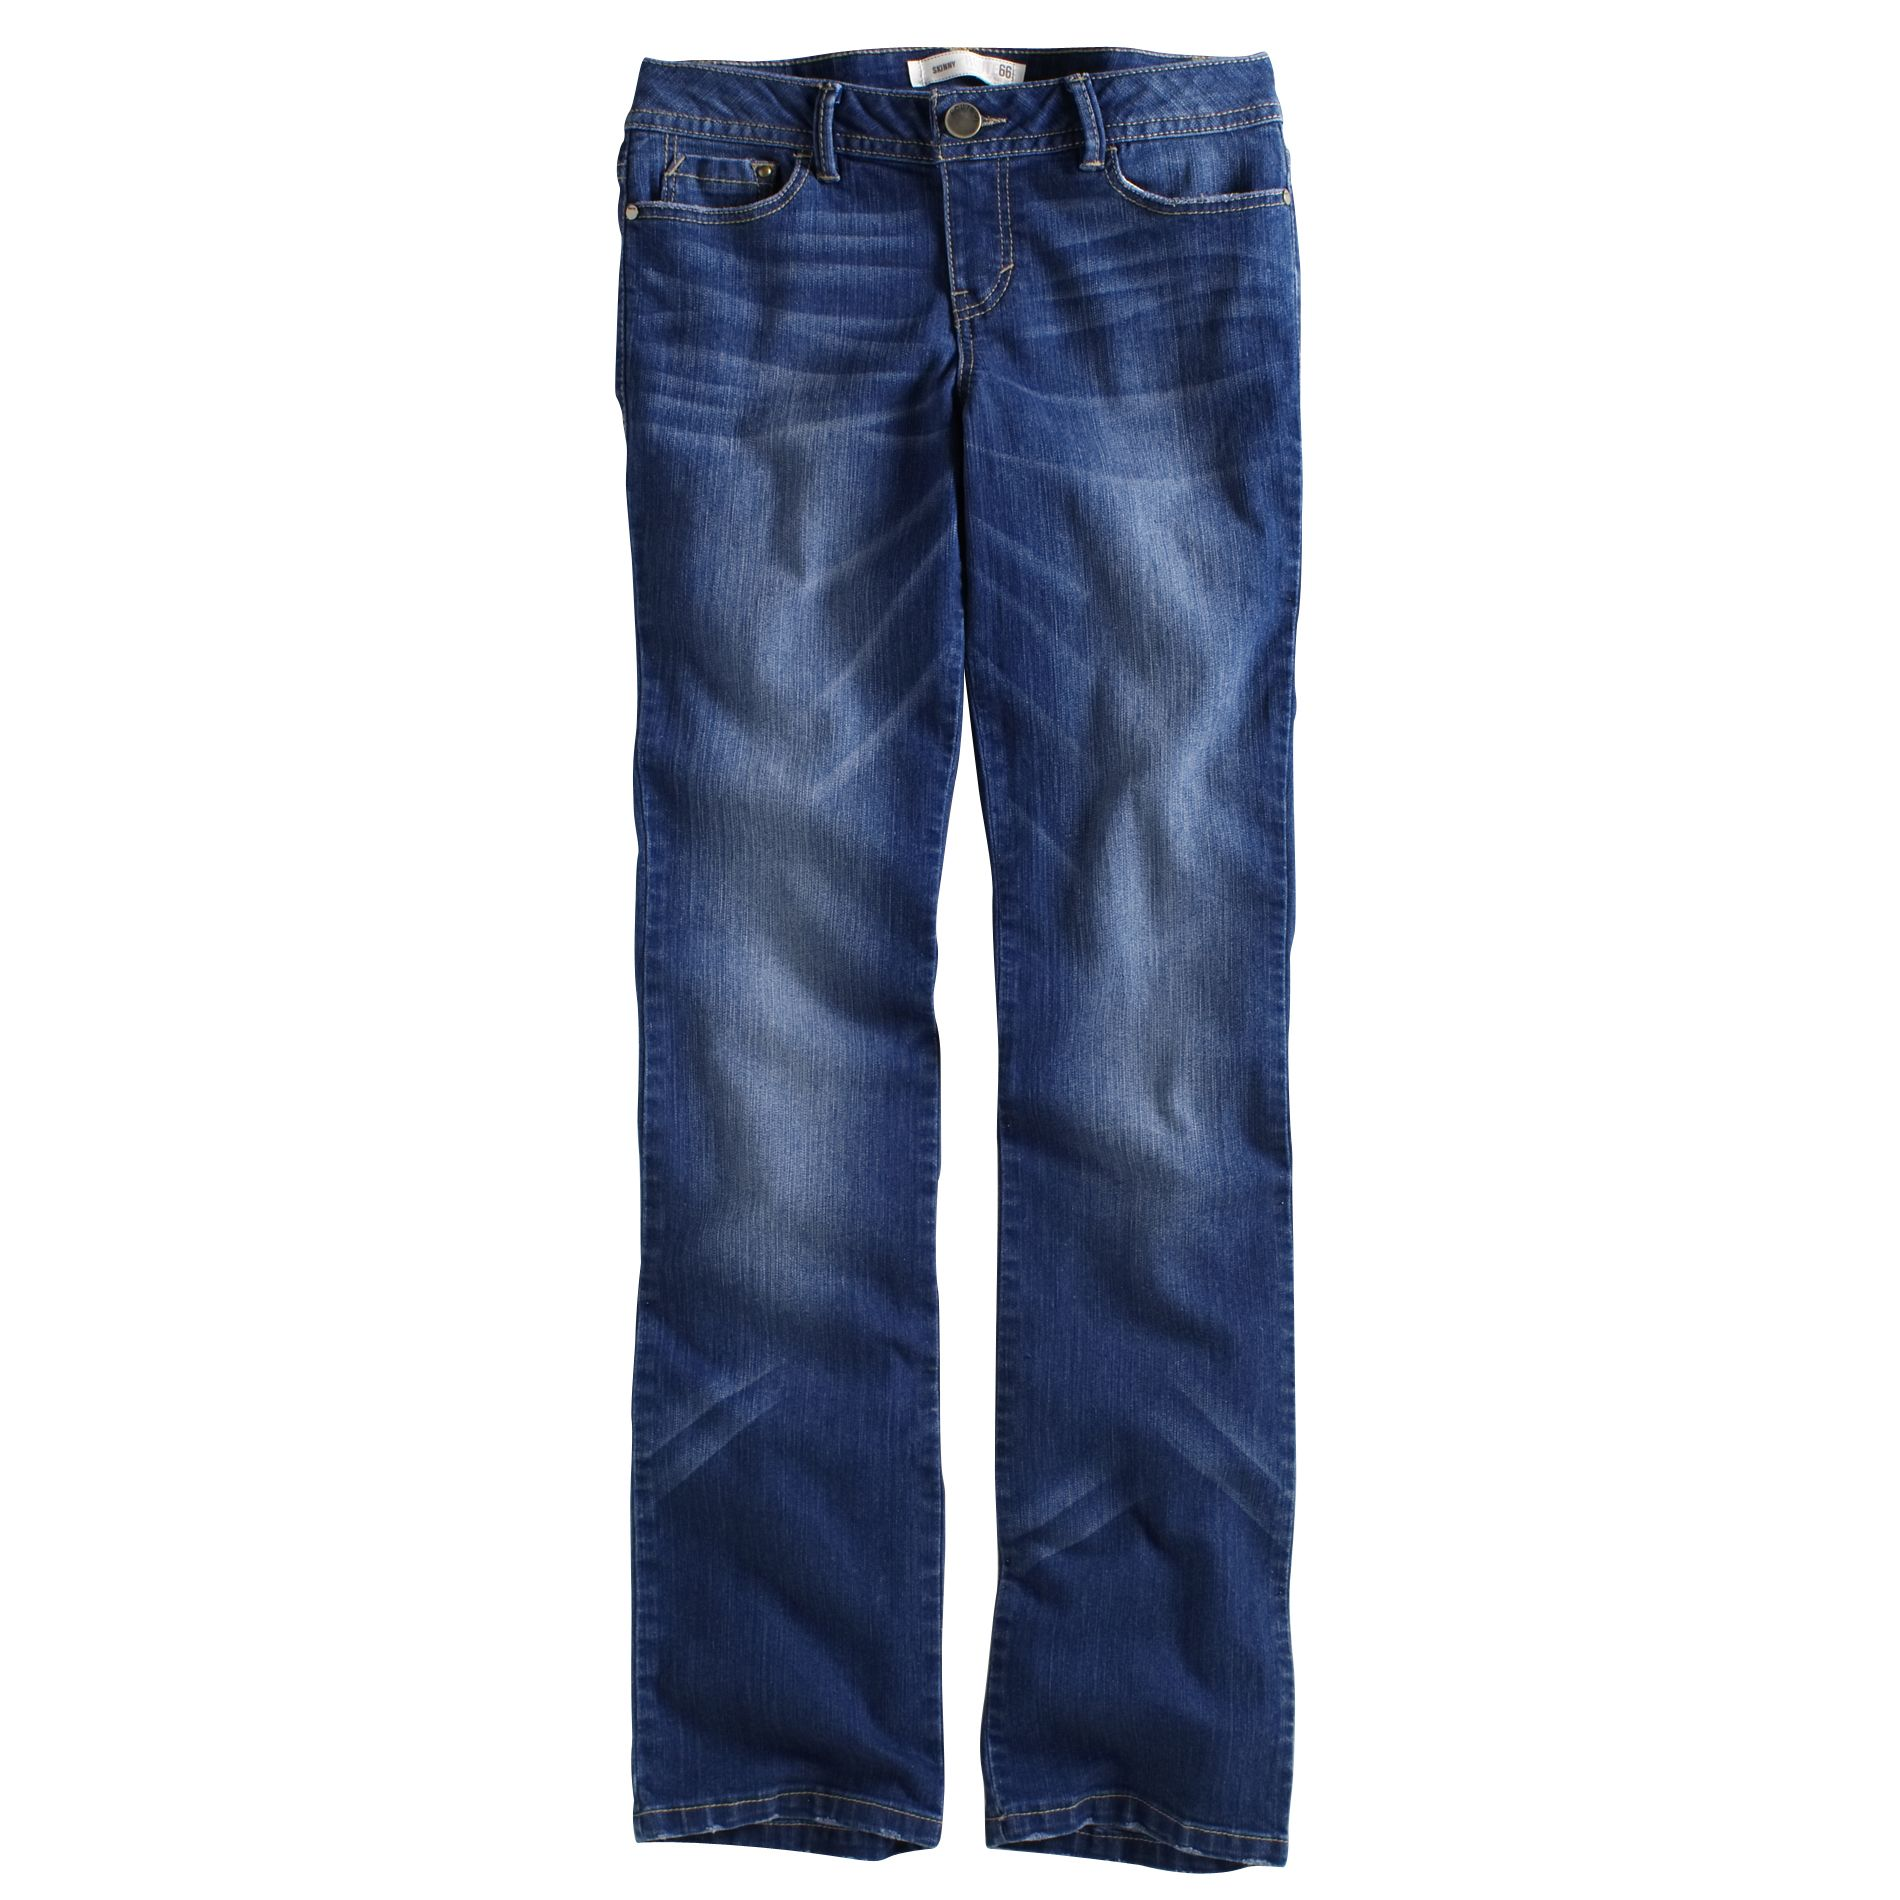 Route 66 Women's Low Rise Bootcut Jeans at Kmart.com